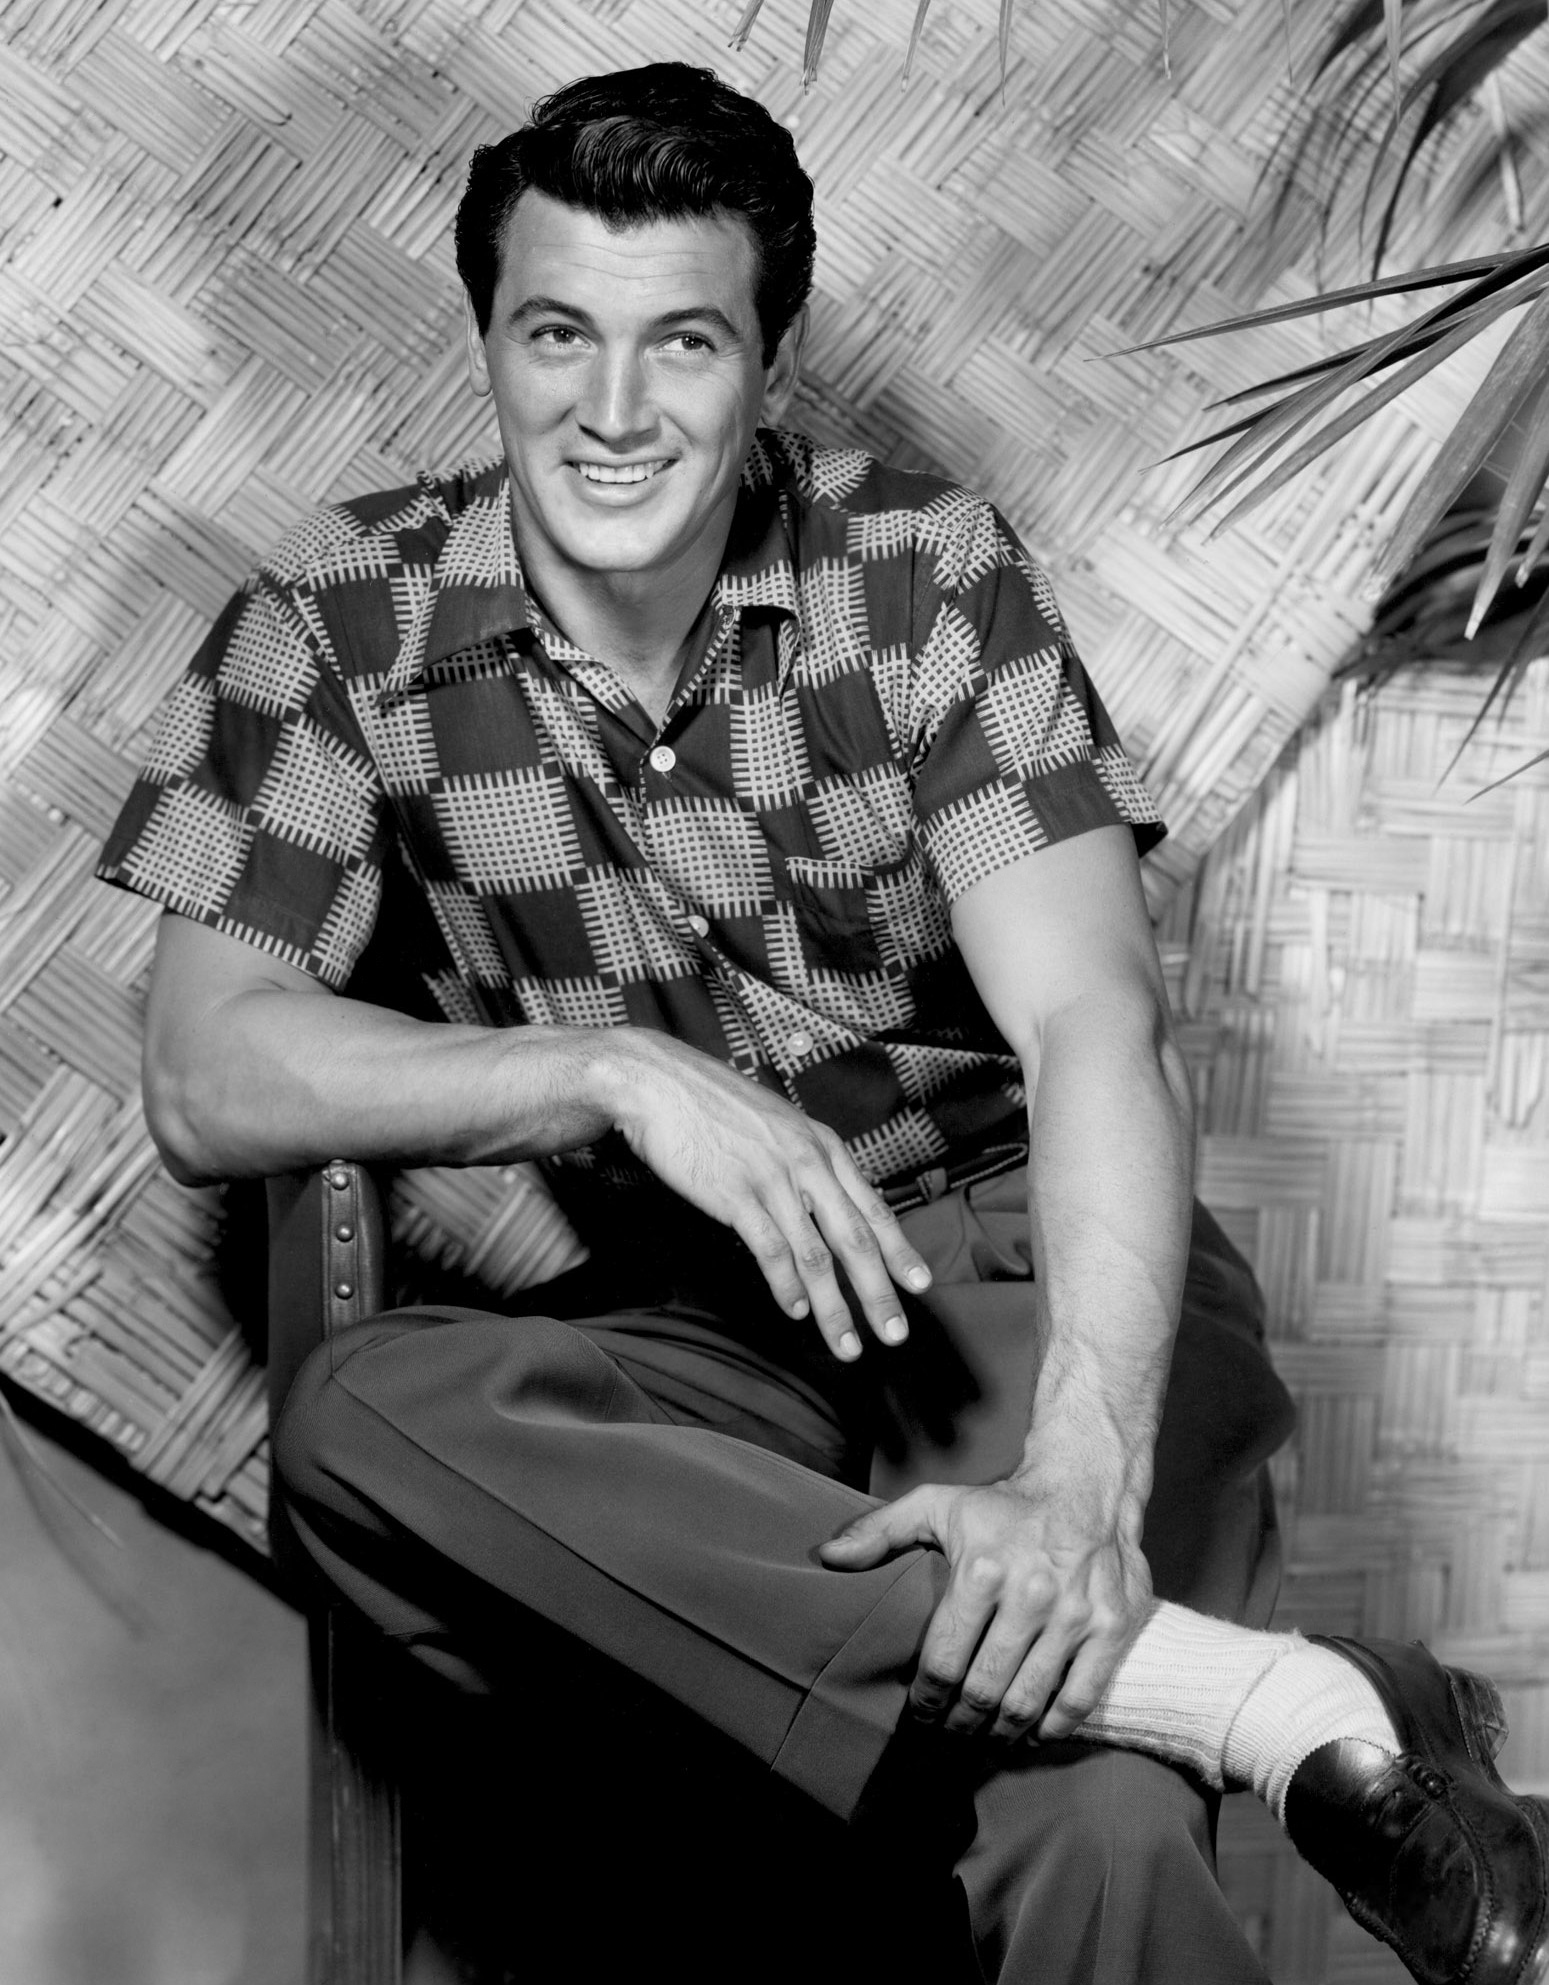 Rock Hudson's Wife: Are You That Fast with Boys'